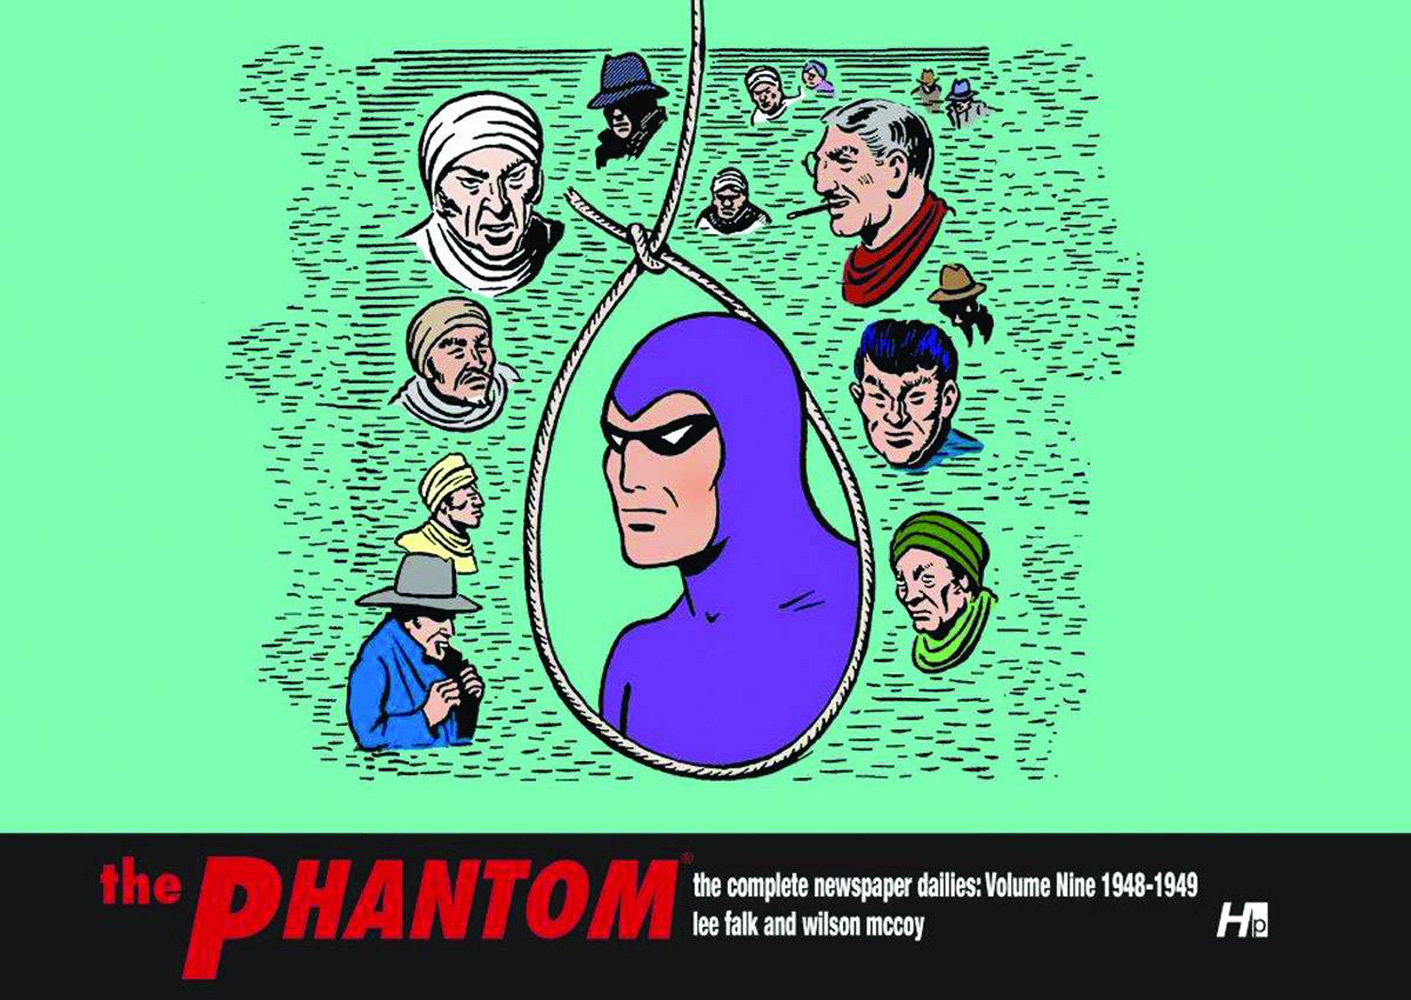 The Phantom: The Complete Dailies Volume 9: 1949-1950